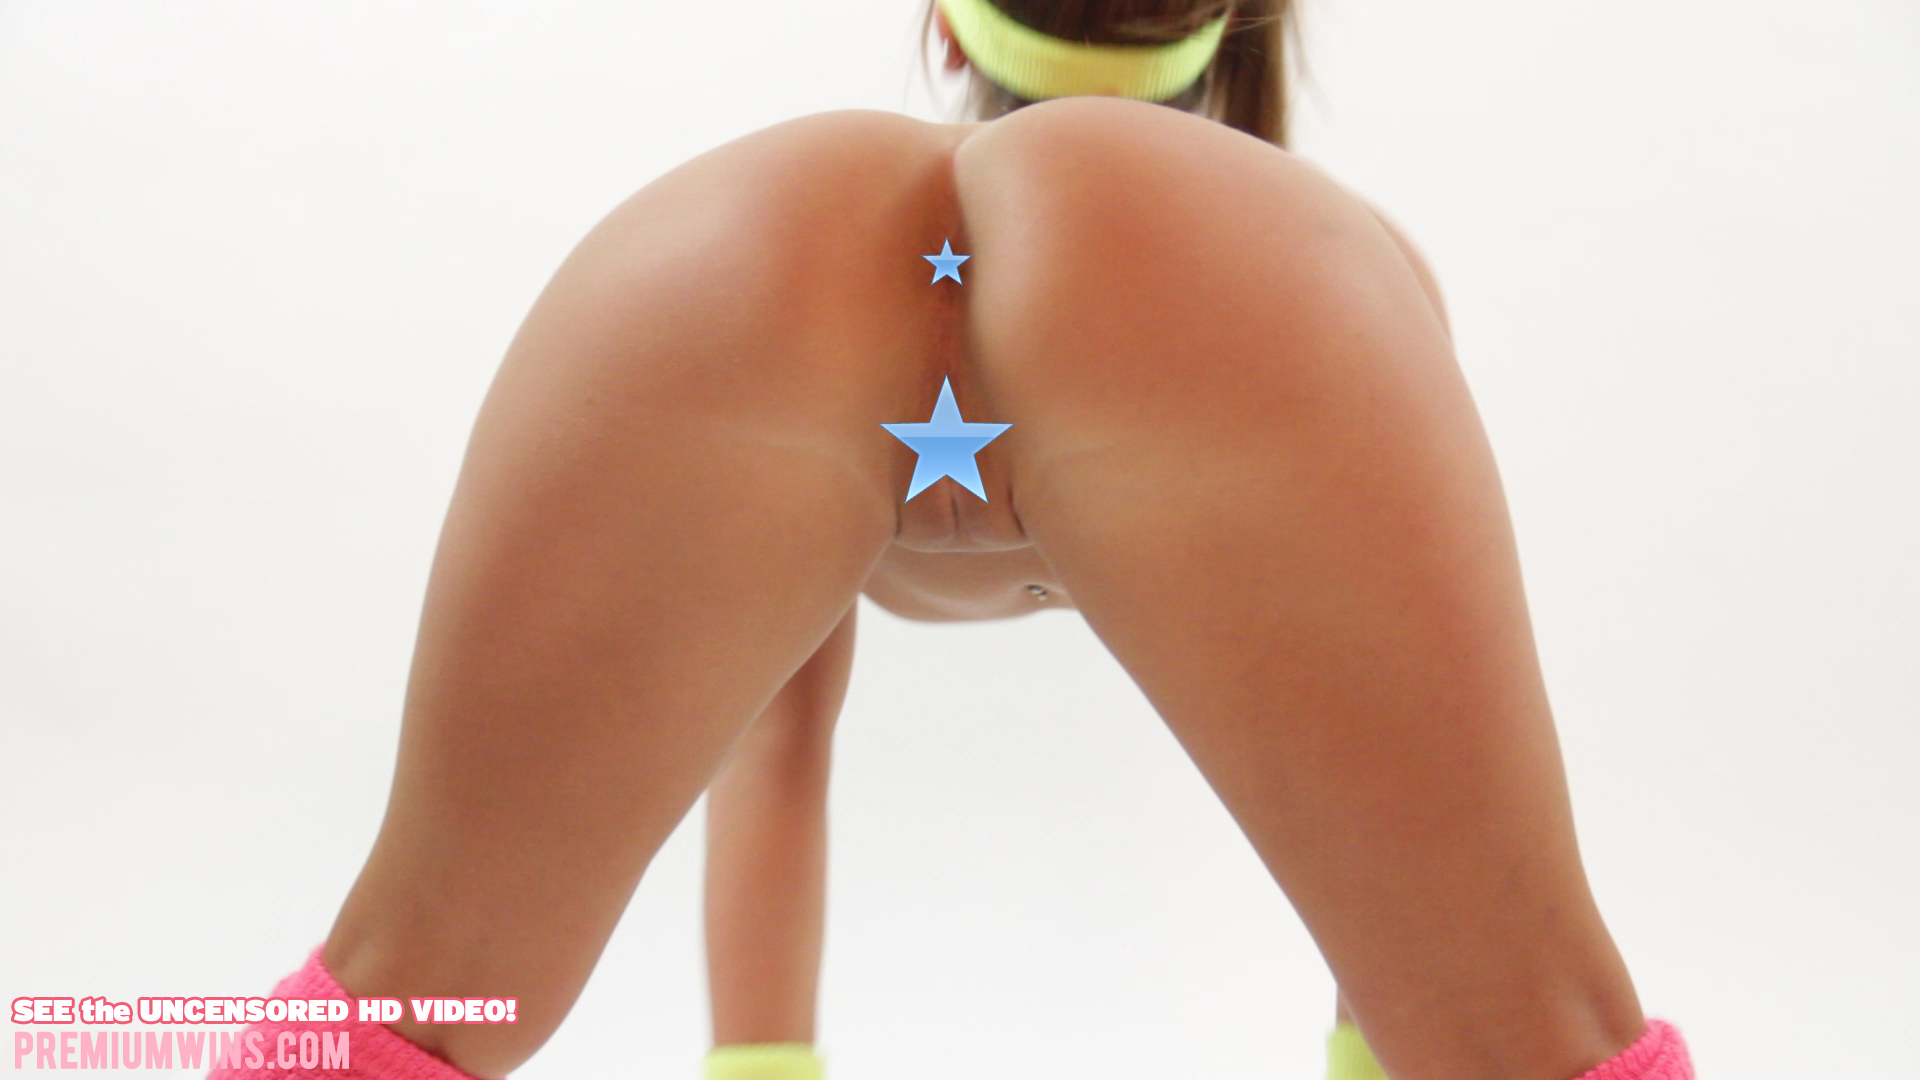 star uncensored nude all tiffany Party